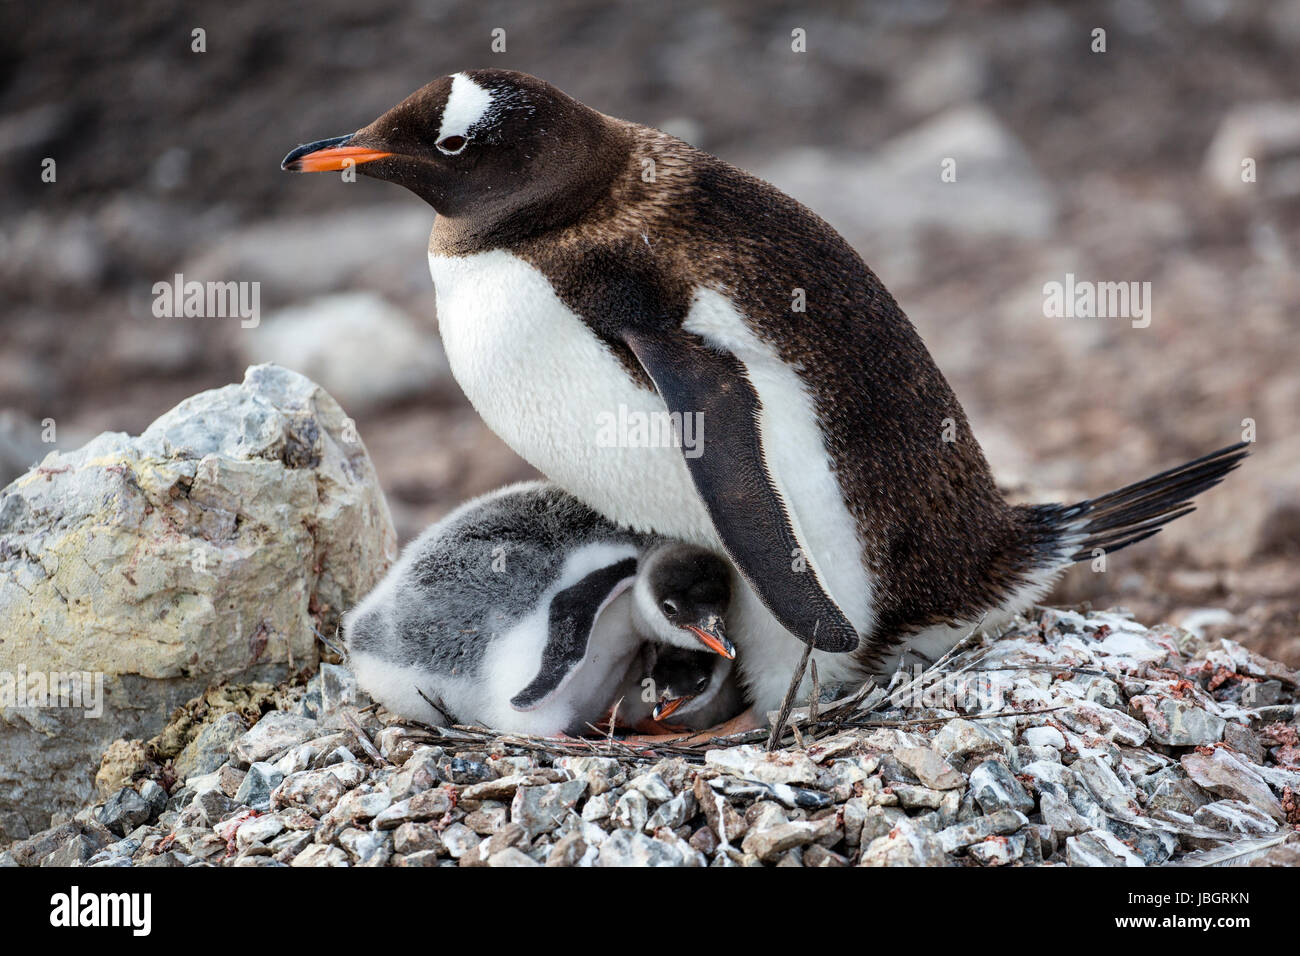 Gentoo penguin and her chicks at Neko Harbor, Antarctica - Stock Image